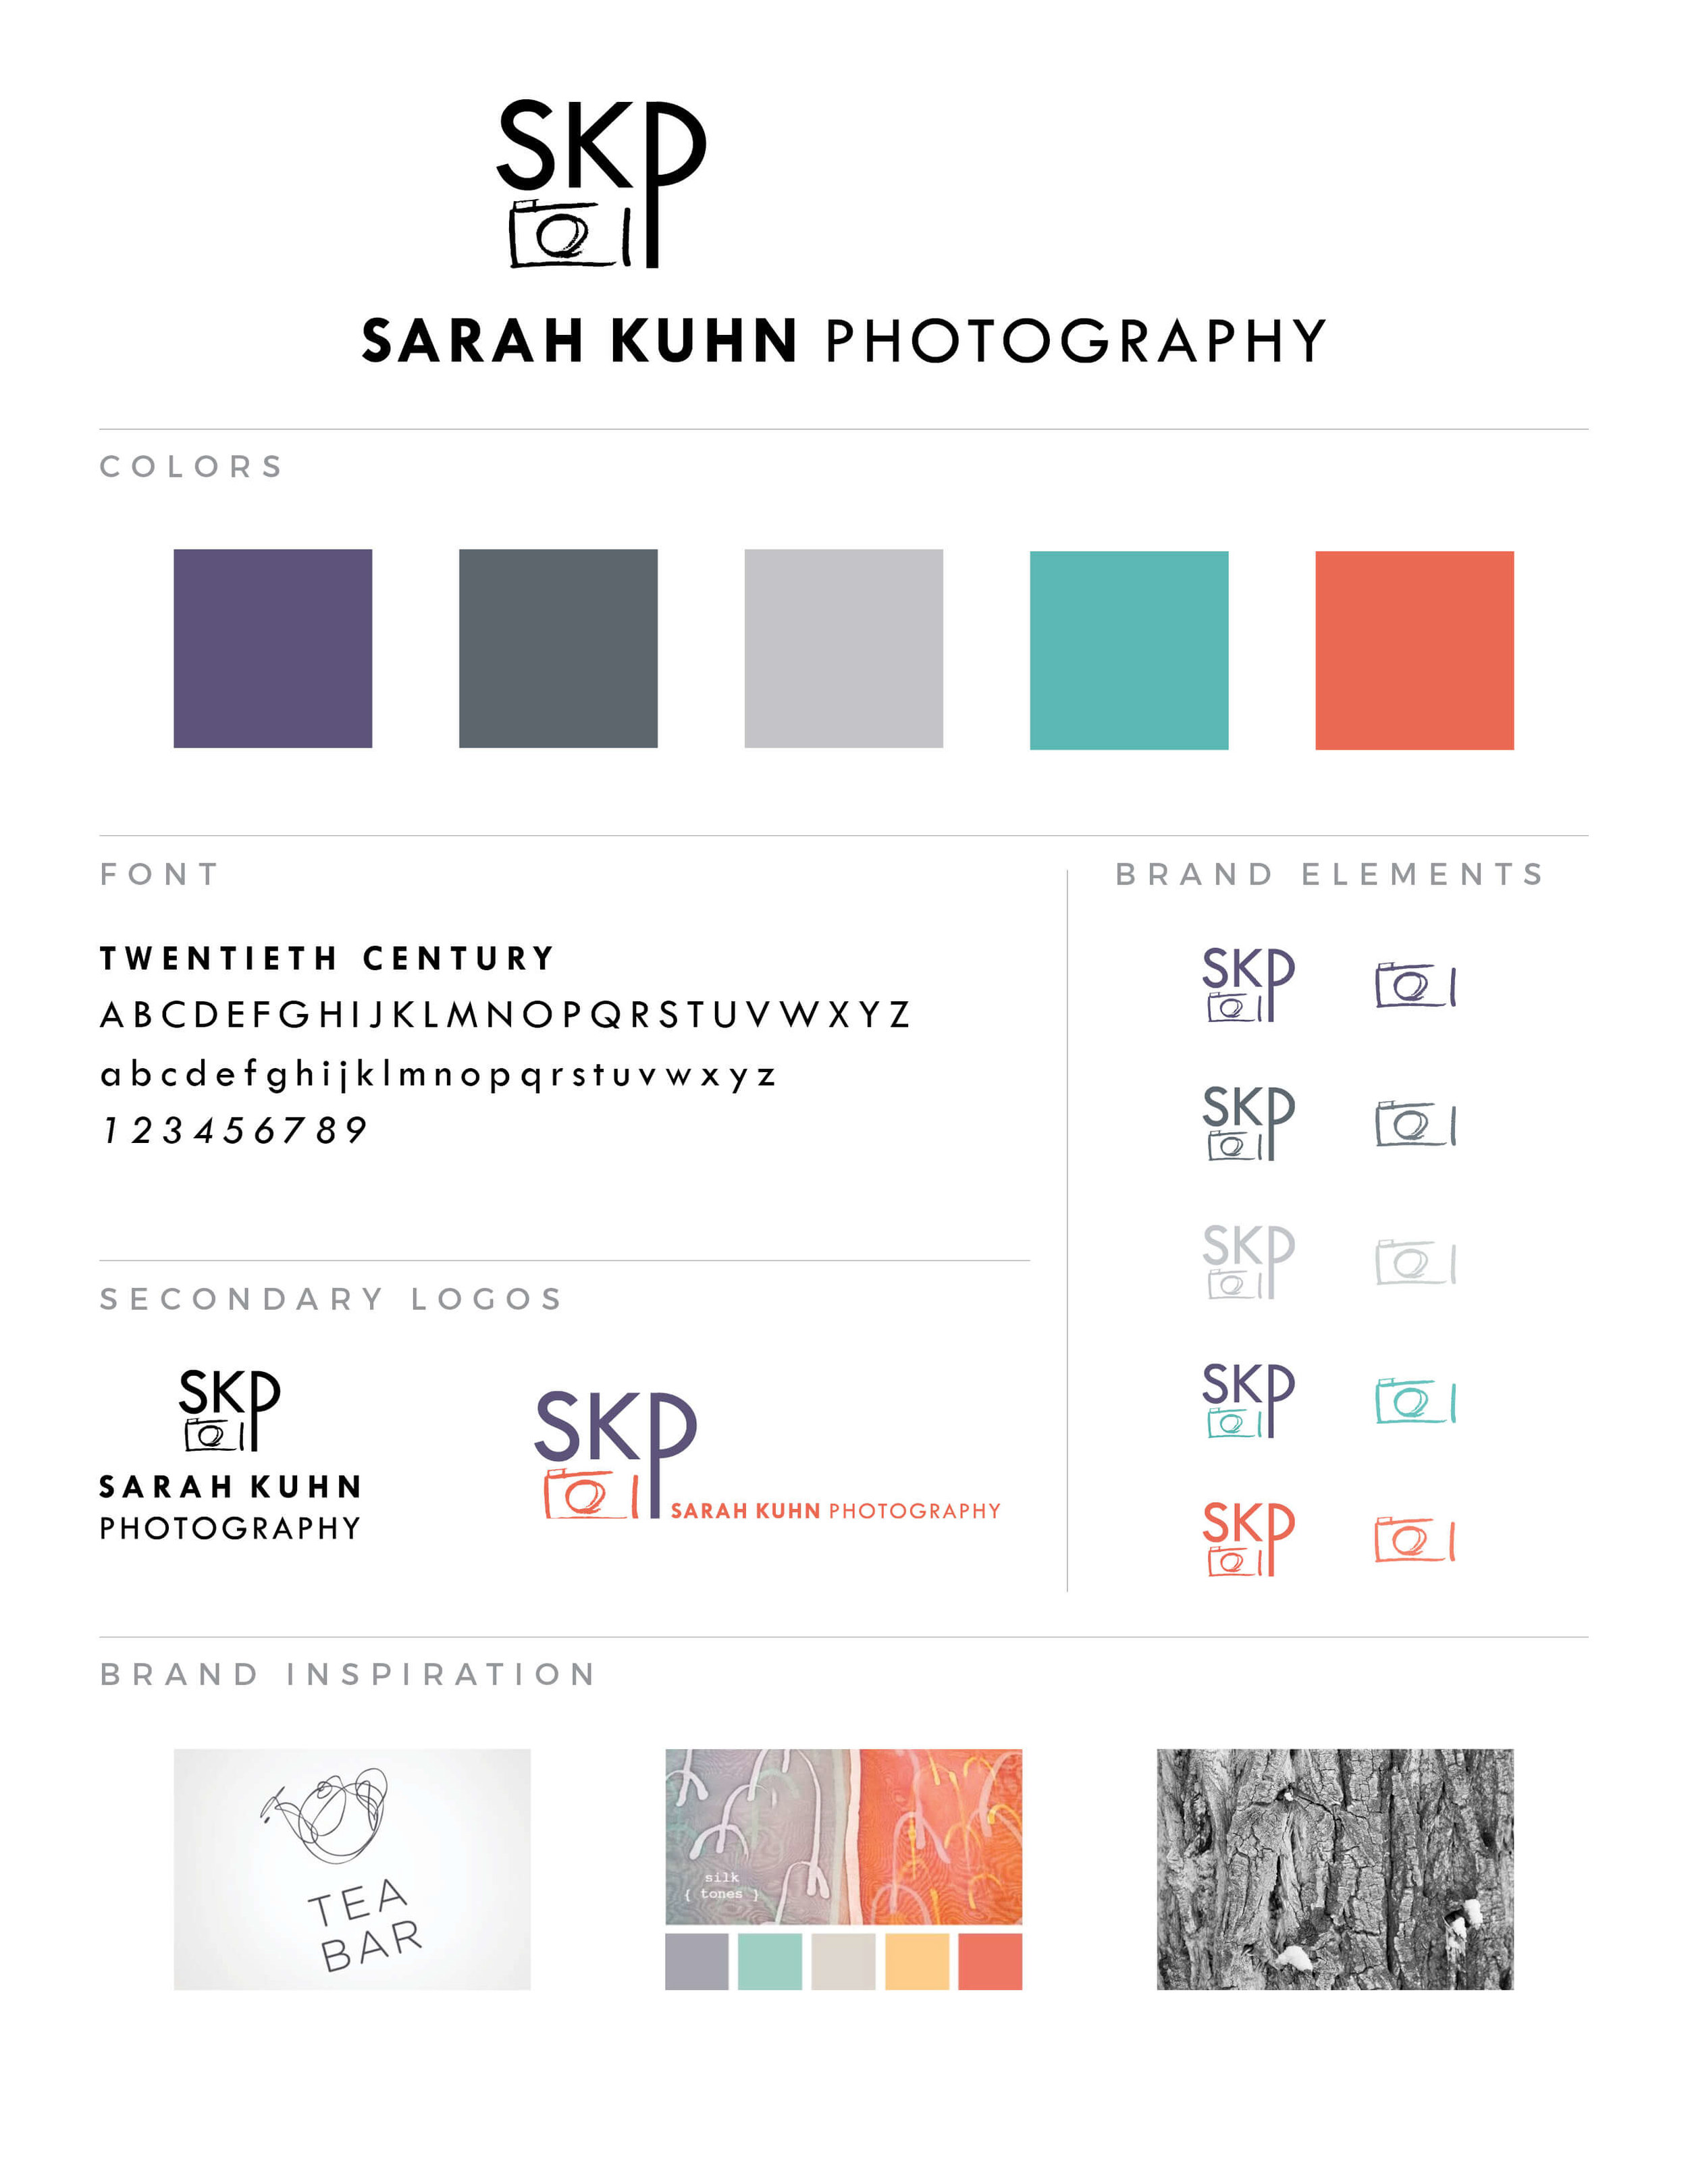 Sarah Kuhn Photography identity design by The Qurious Effect, a brand and Squarespace web design company